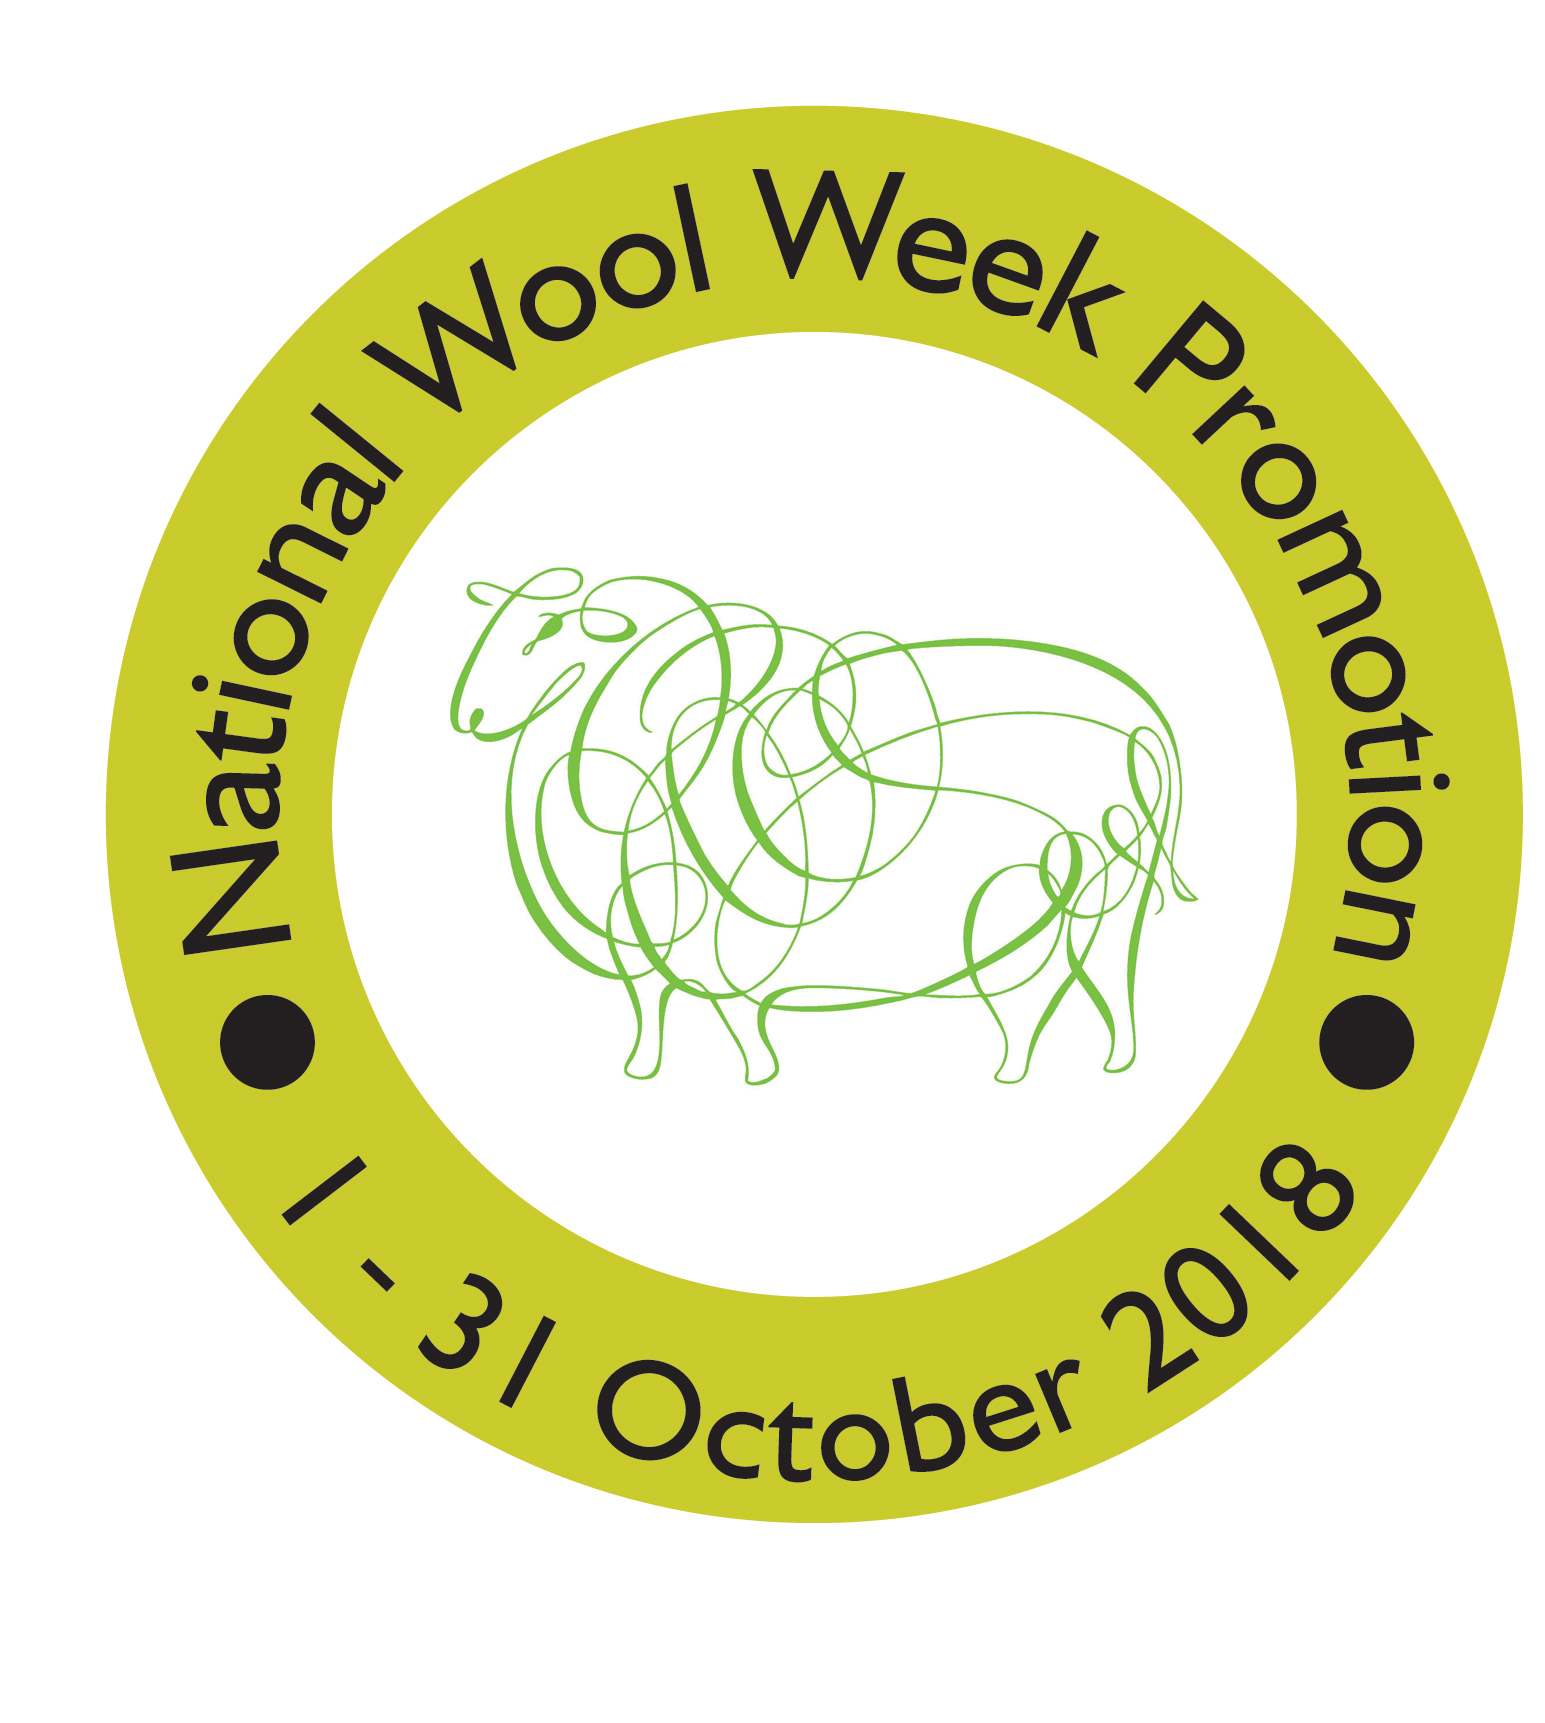 National Wool Week Promotions